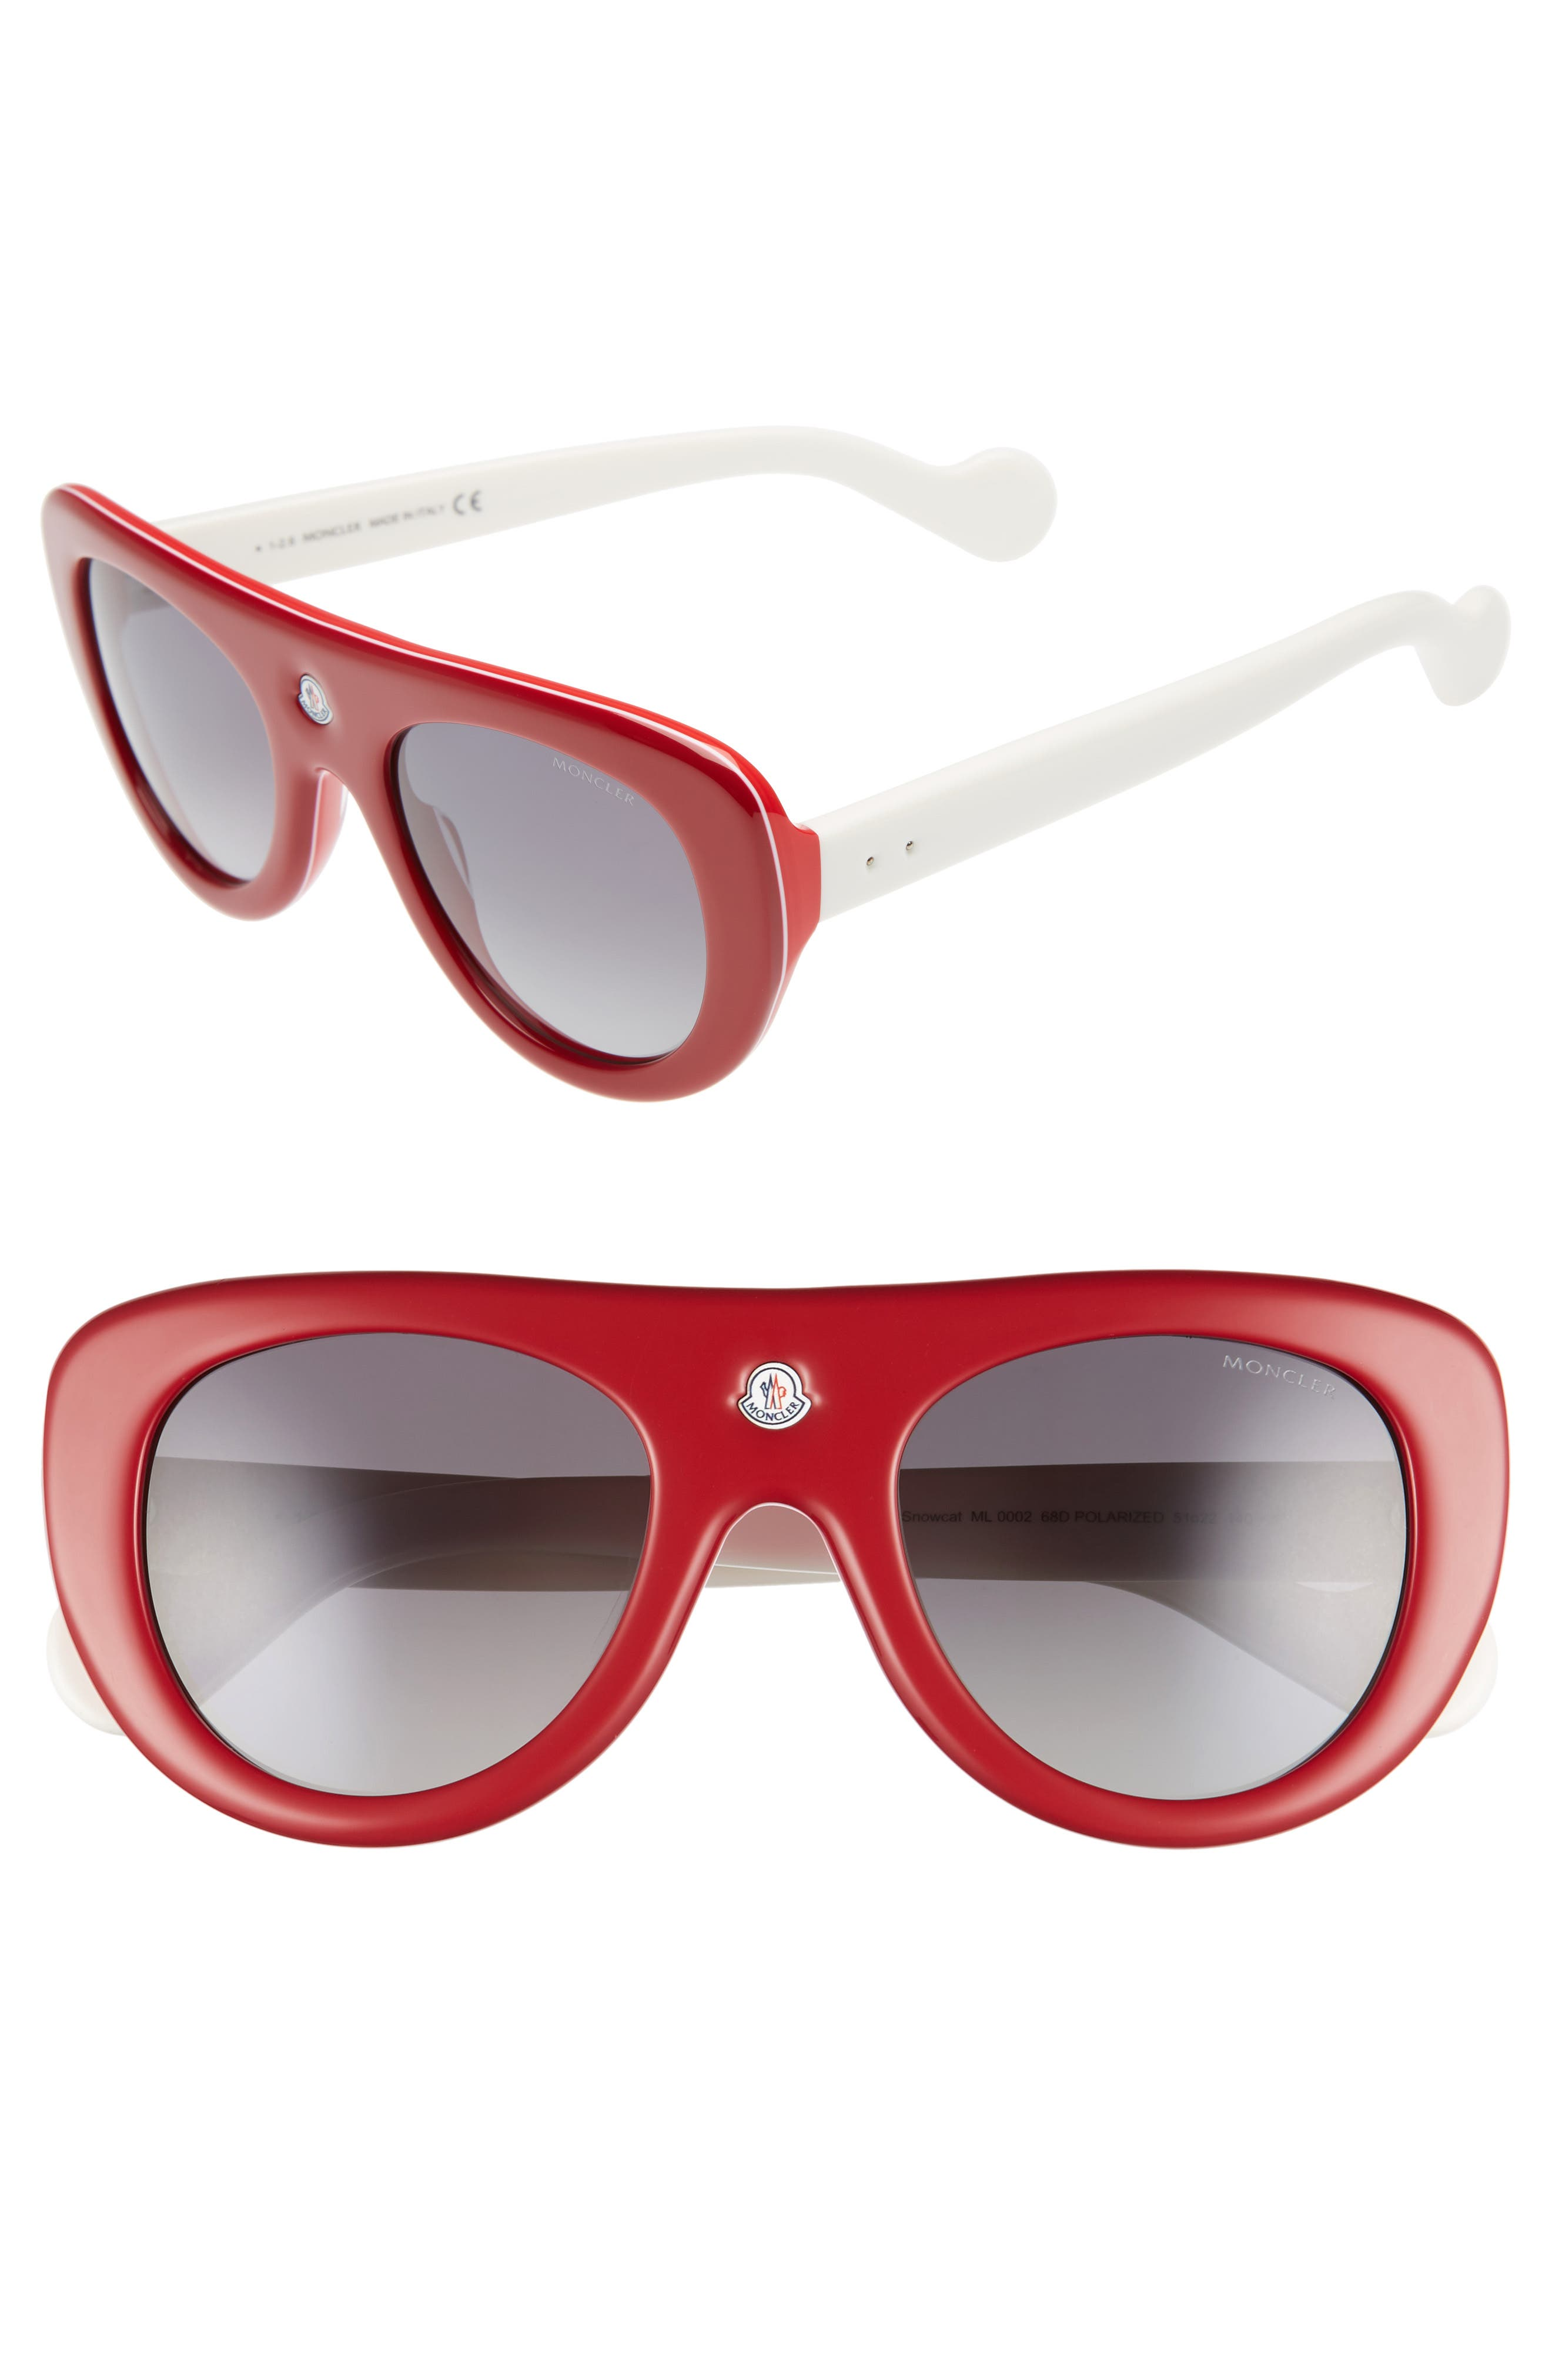 51mm Polarized Two-Tone Geometric Sunglasses,                         Main,                         color, Red/ Ivory/ Smoke Polar